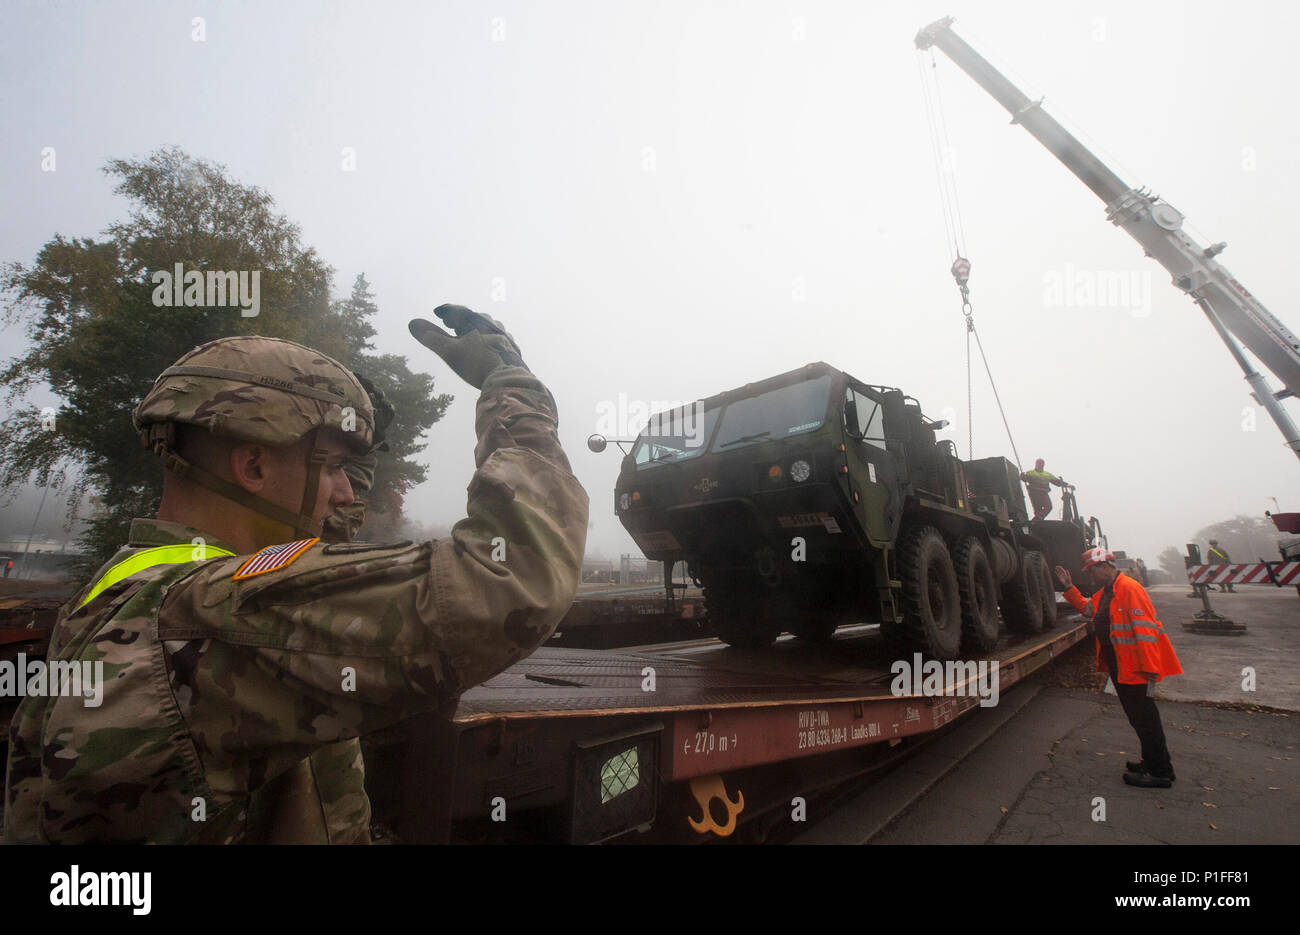 """U.S. Army Sergeant Joseph Harris (left), with the 5th Battalion, 7th Air Defense Artillery Regiment, directs the loading of a military support vehicle onto a railroad flatbed trailer at Rhine Ordnance Barracks in Kaiserslautern, Germany on Oct. 27, 2016. The military transport is in preparation for the 10th Army Air Missile Defense Command's """"Patriot Shock"""" exercise set to happen in Romania over the next several weeks. (DoD News photo by Tech. Sgt. Brian Kimball) - Stock Image"""